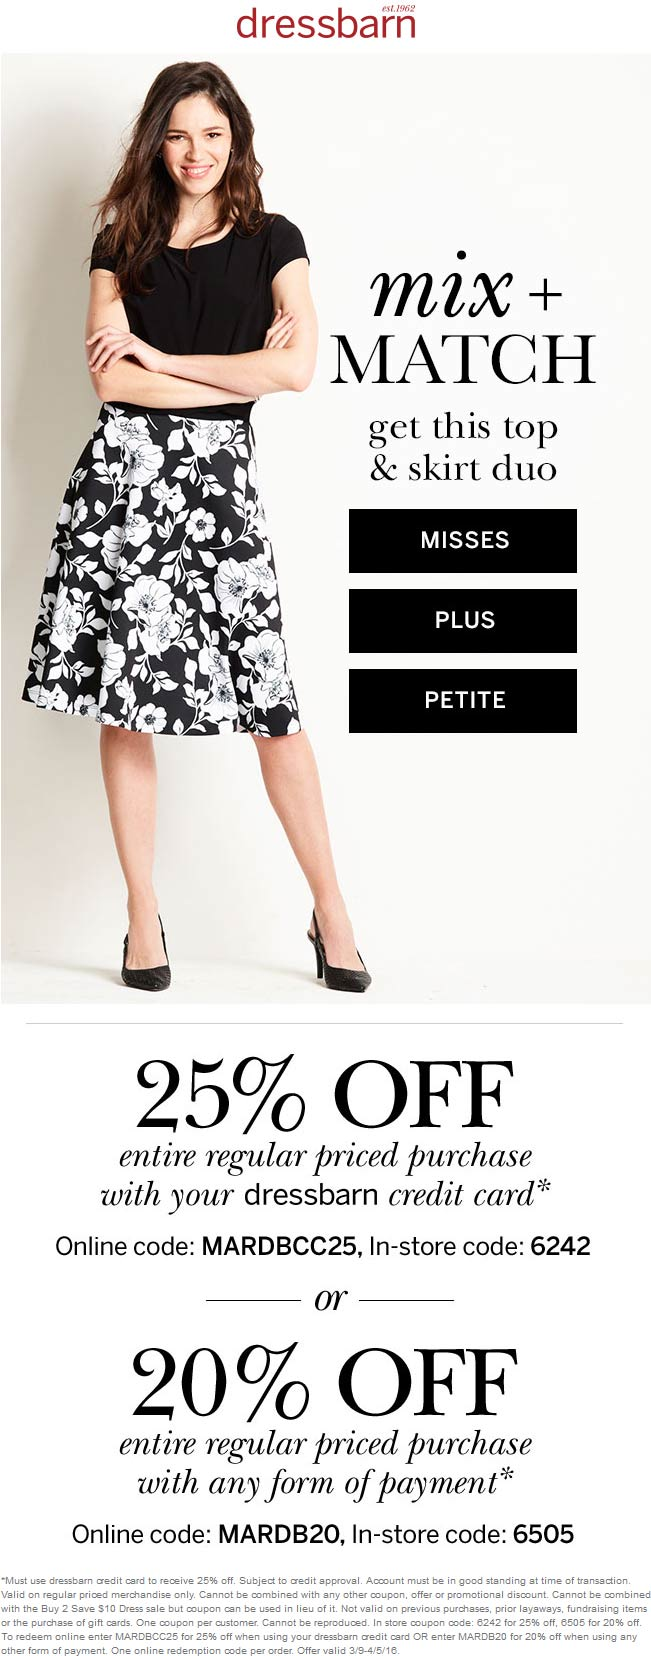 Dressbarn Coupon August 2017 20% off at Dressbarn, or online via promo code MARDB20